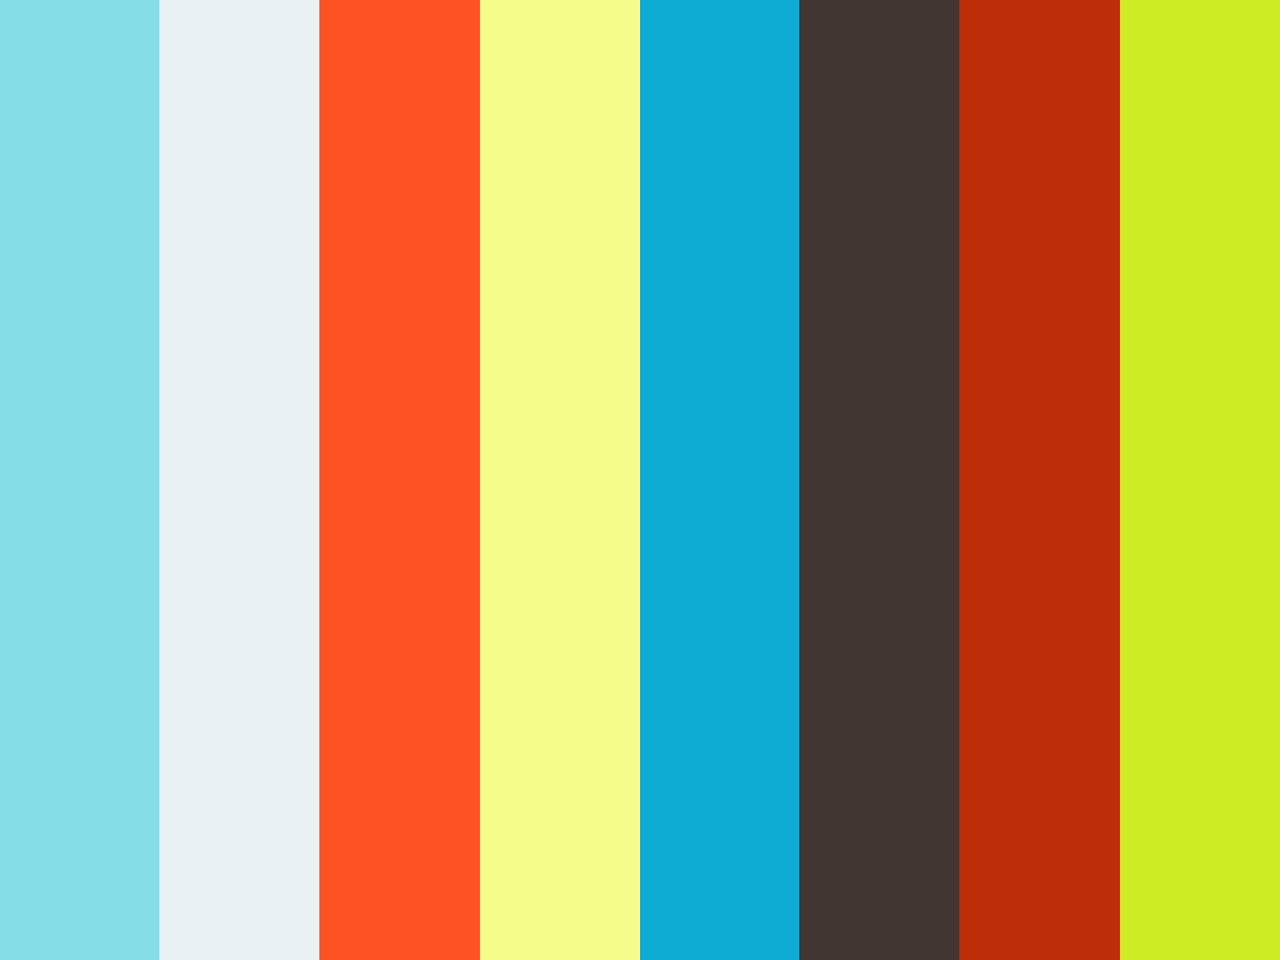 Organizational Chart Definition: Visual Acuity Testing in Adults Instructional Video on Vimeo,Chart